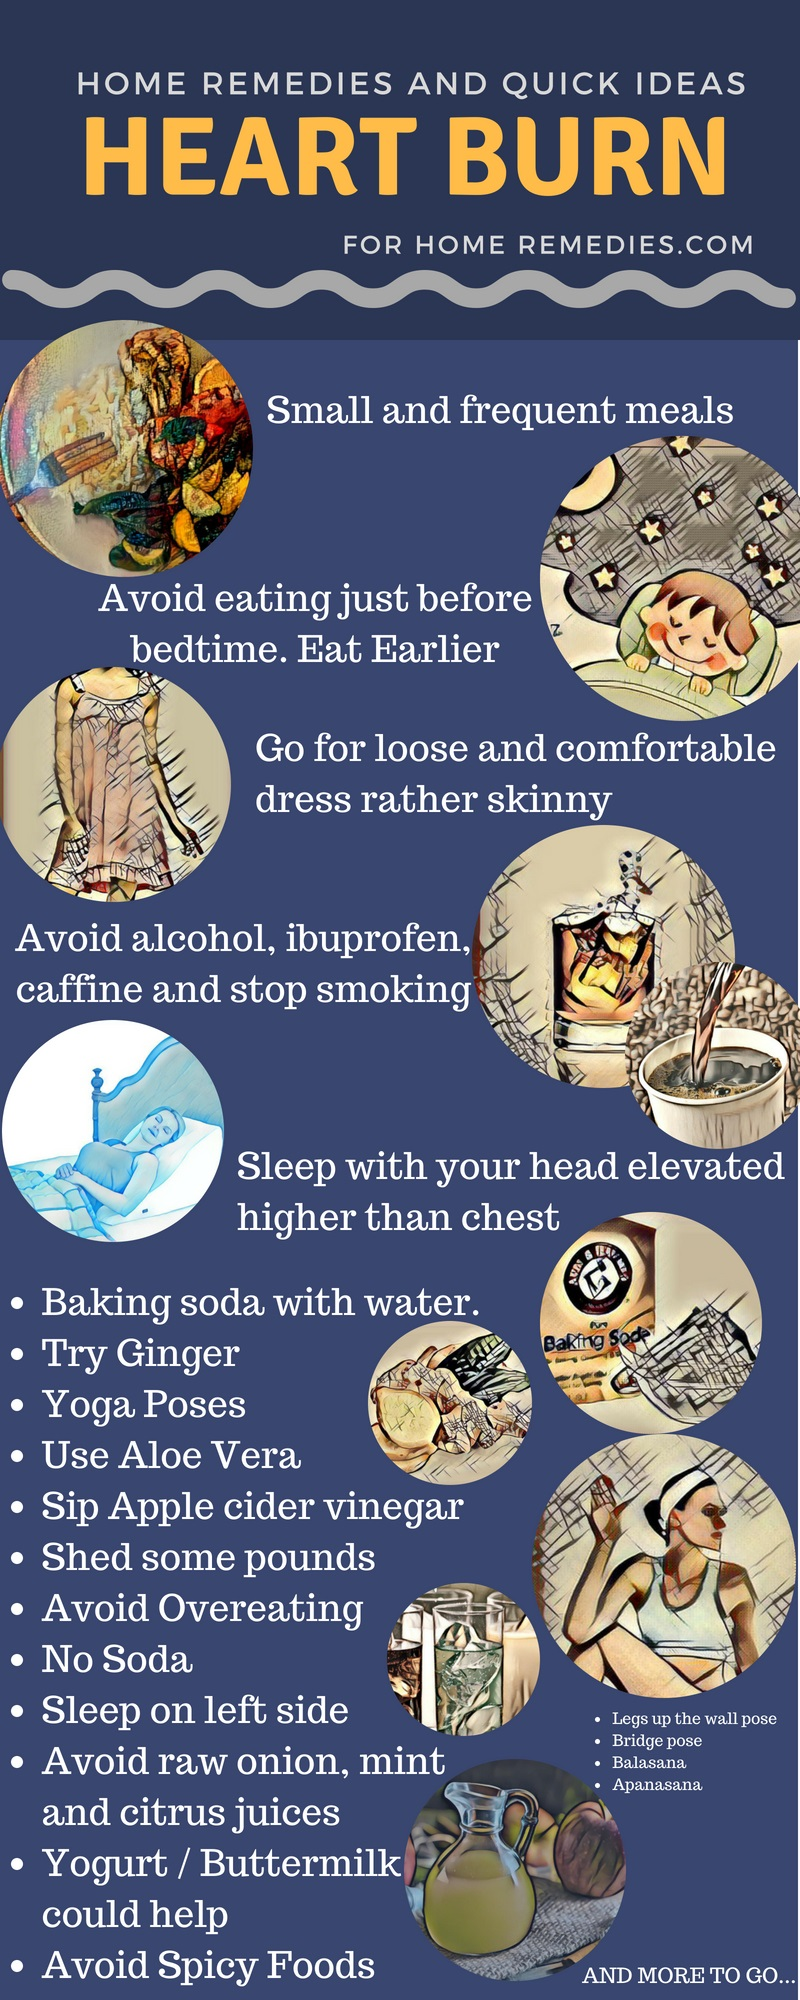 #9 Quick Ideas & Home Remedies for HeartBurn: Acidity